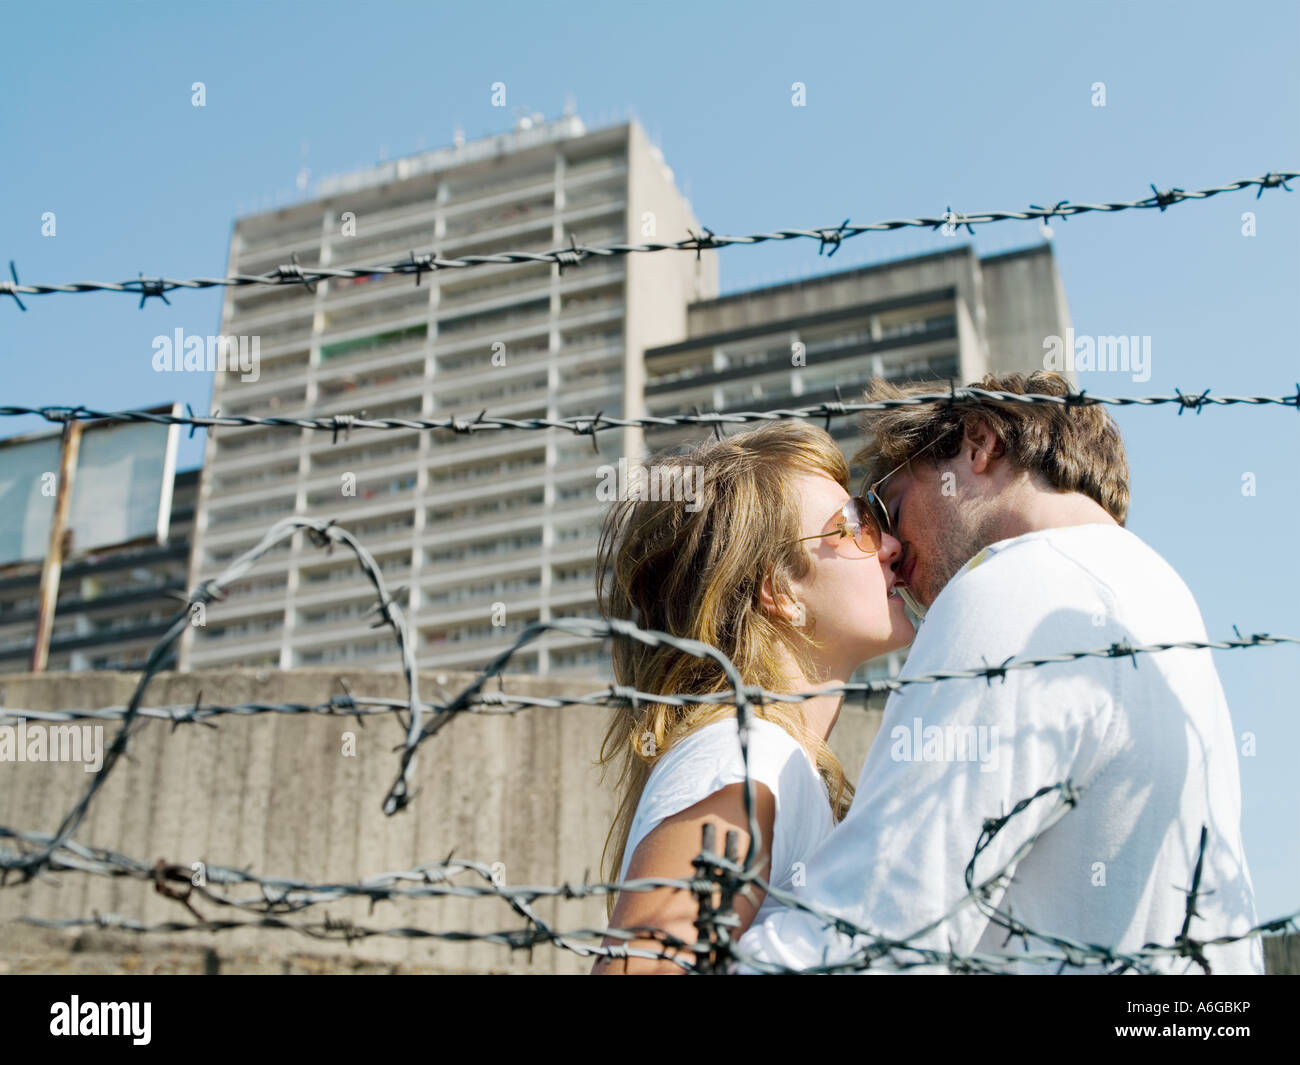 Young couple kissing in urban setting Stock Photo